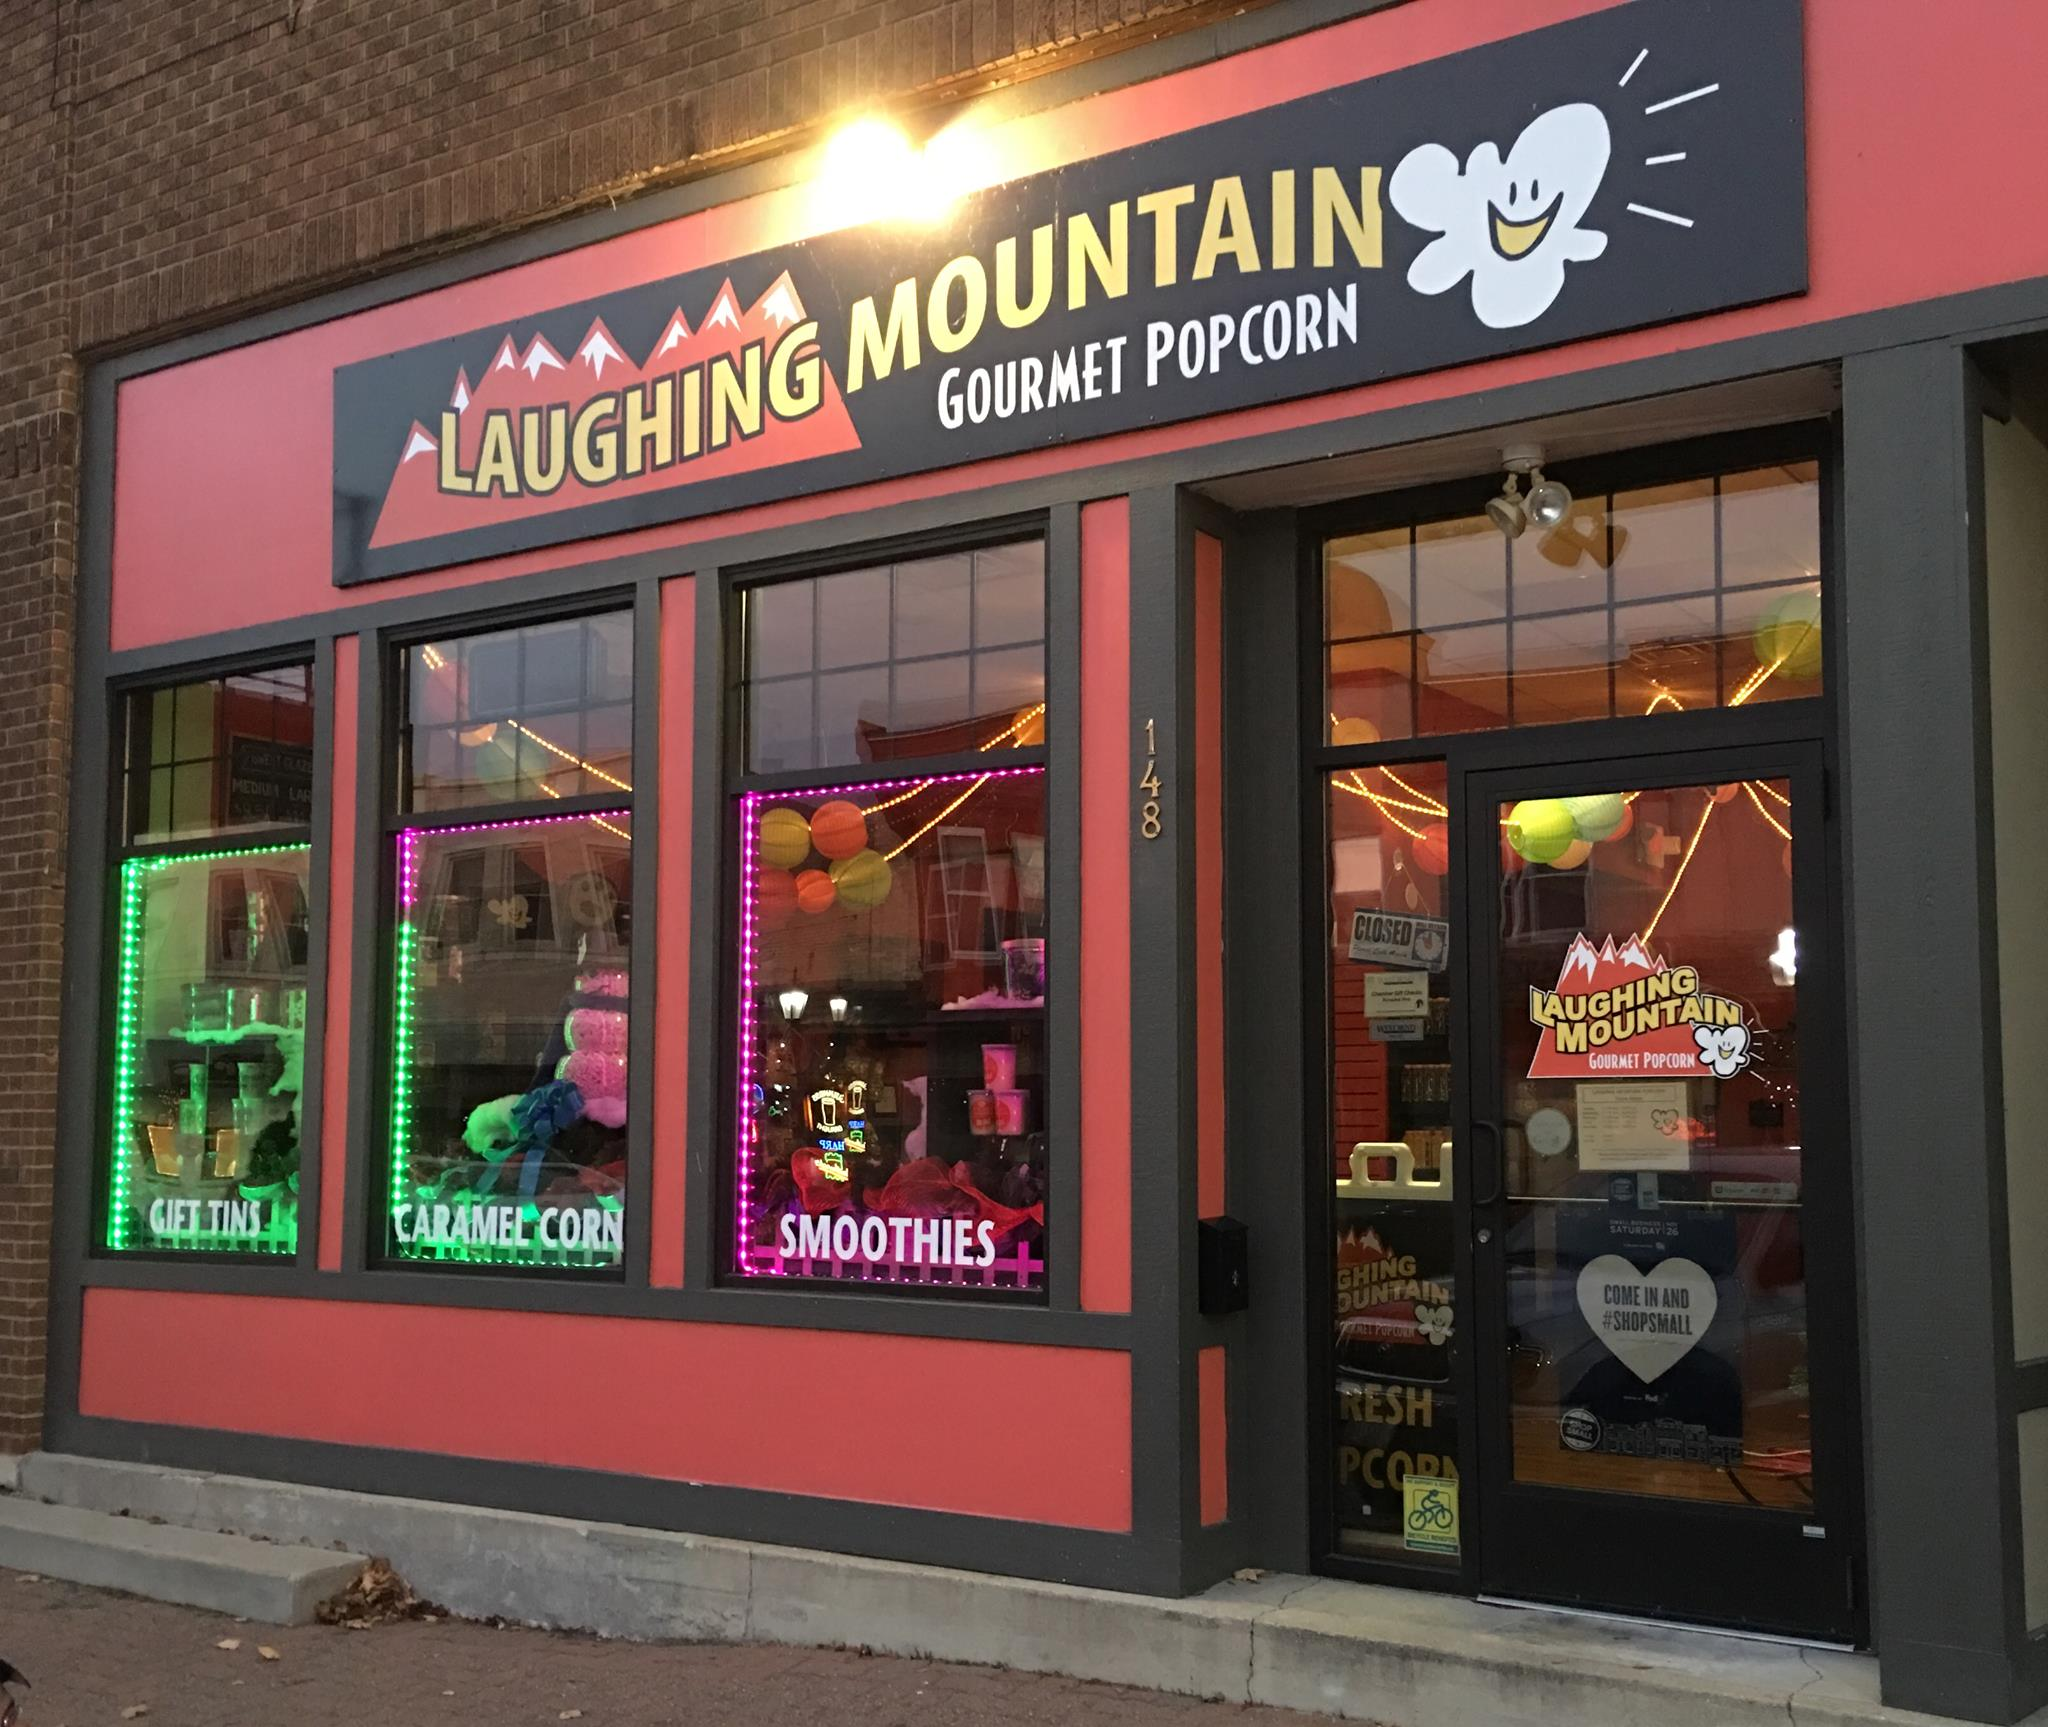 Laughing Mountain Gourmet Popcorn